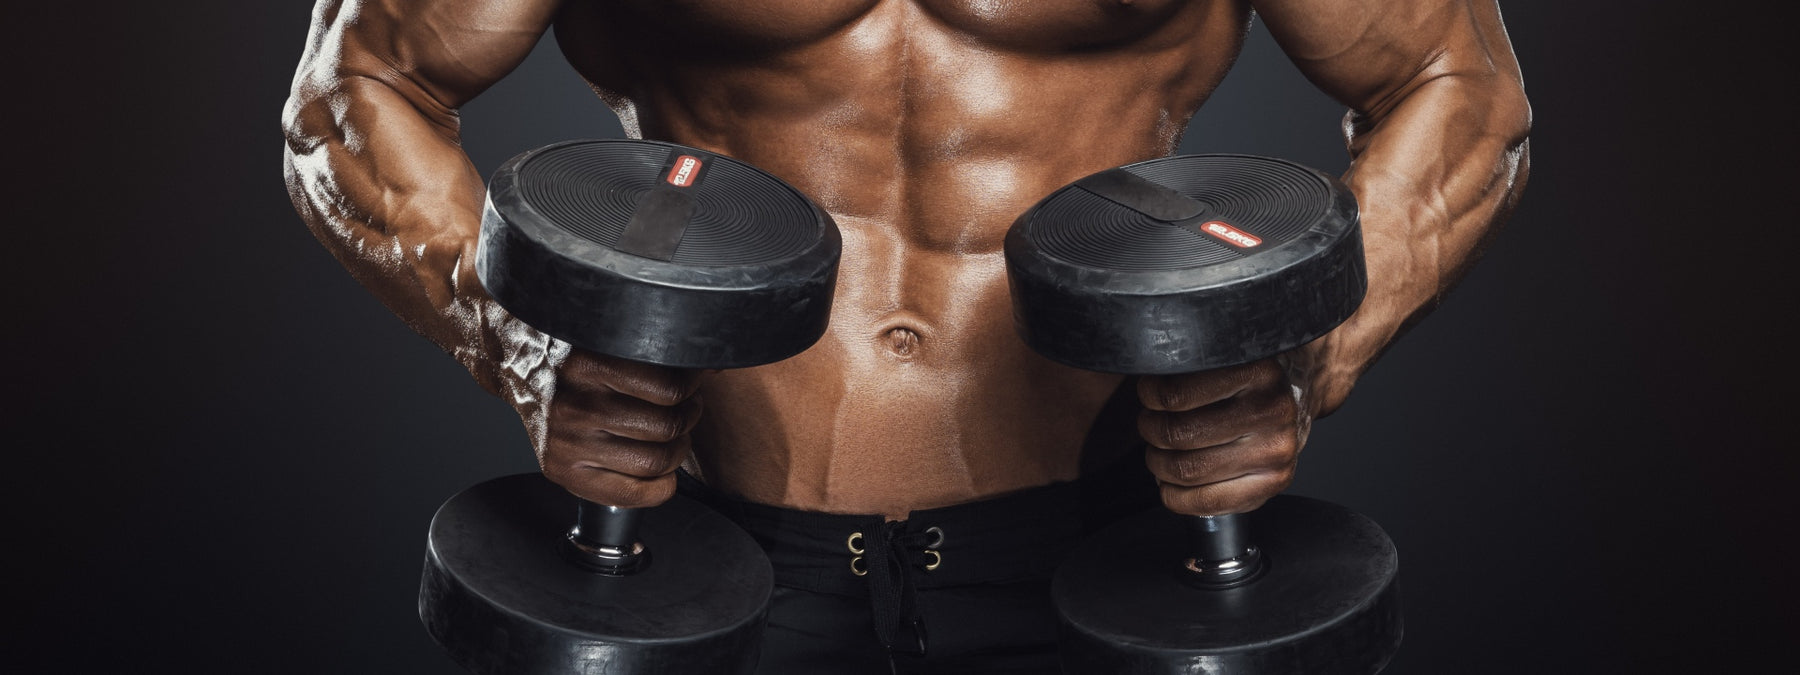 Build Your Best Body by Avoiding These 6 Lame Excuses